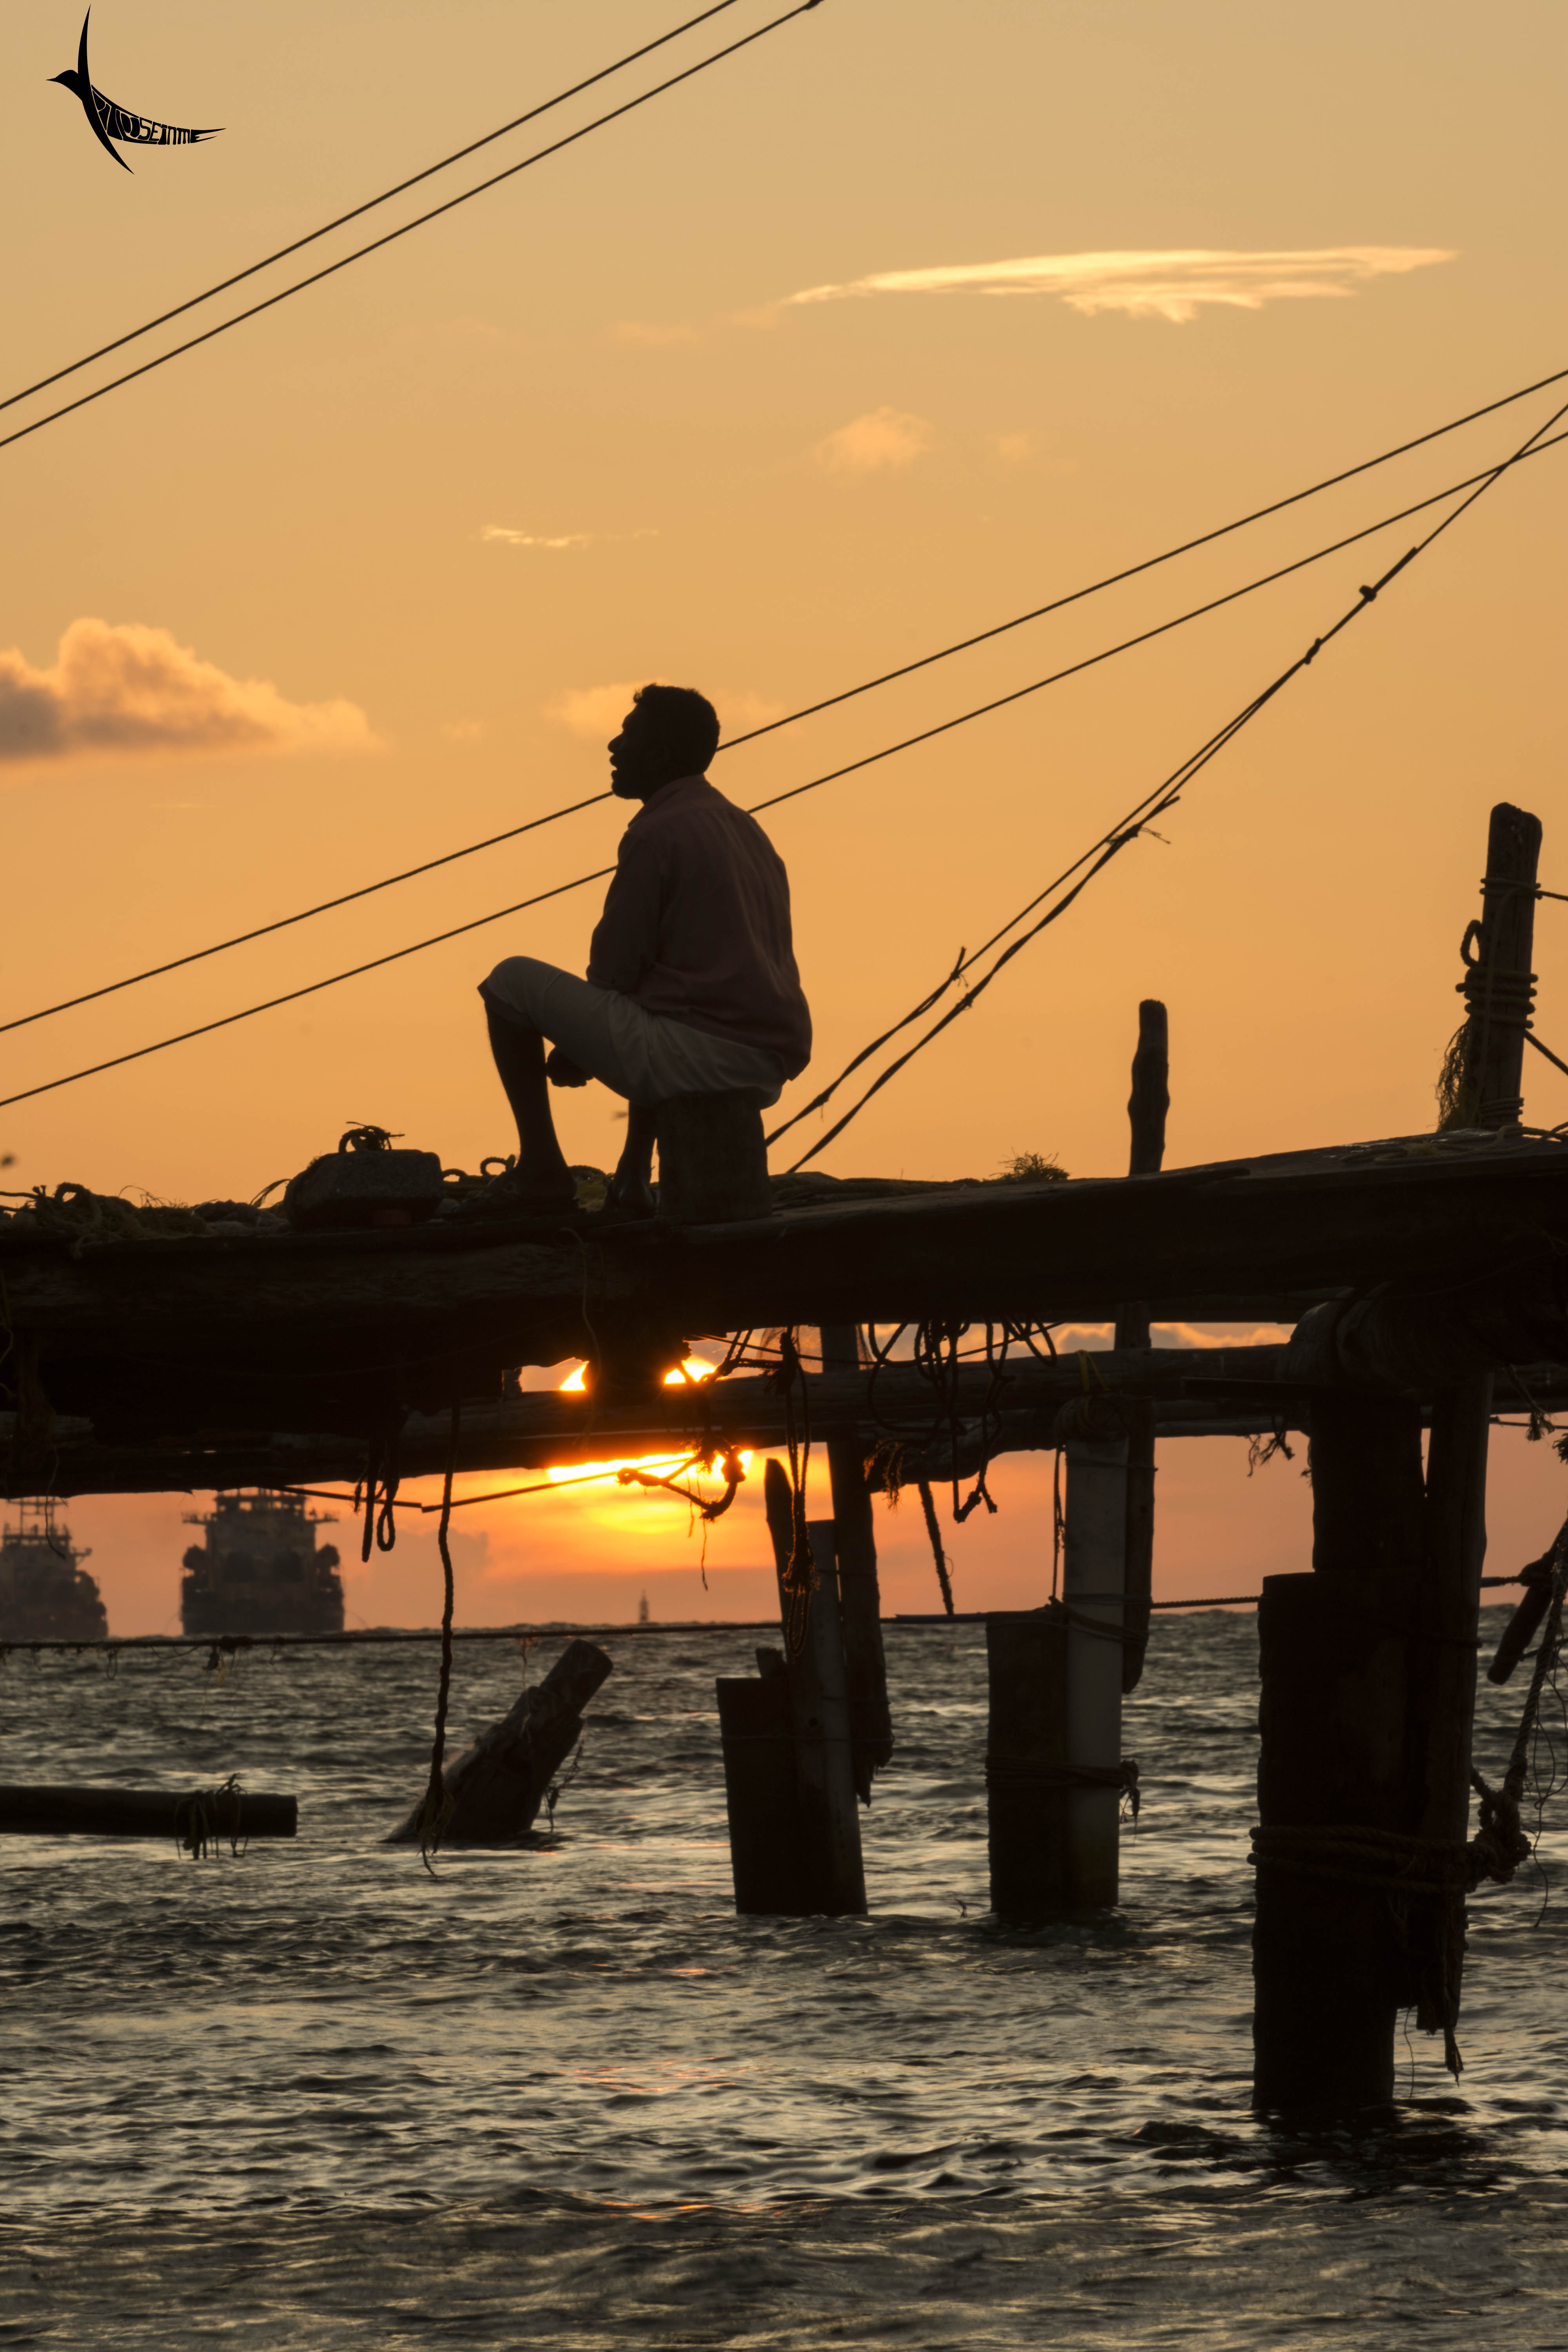 A fisherman rests on a pole after the laborious task